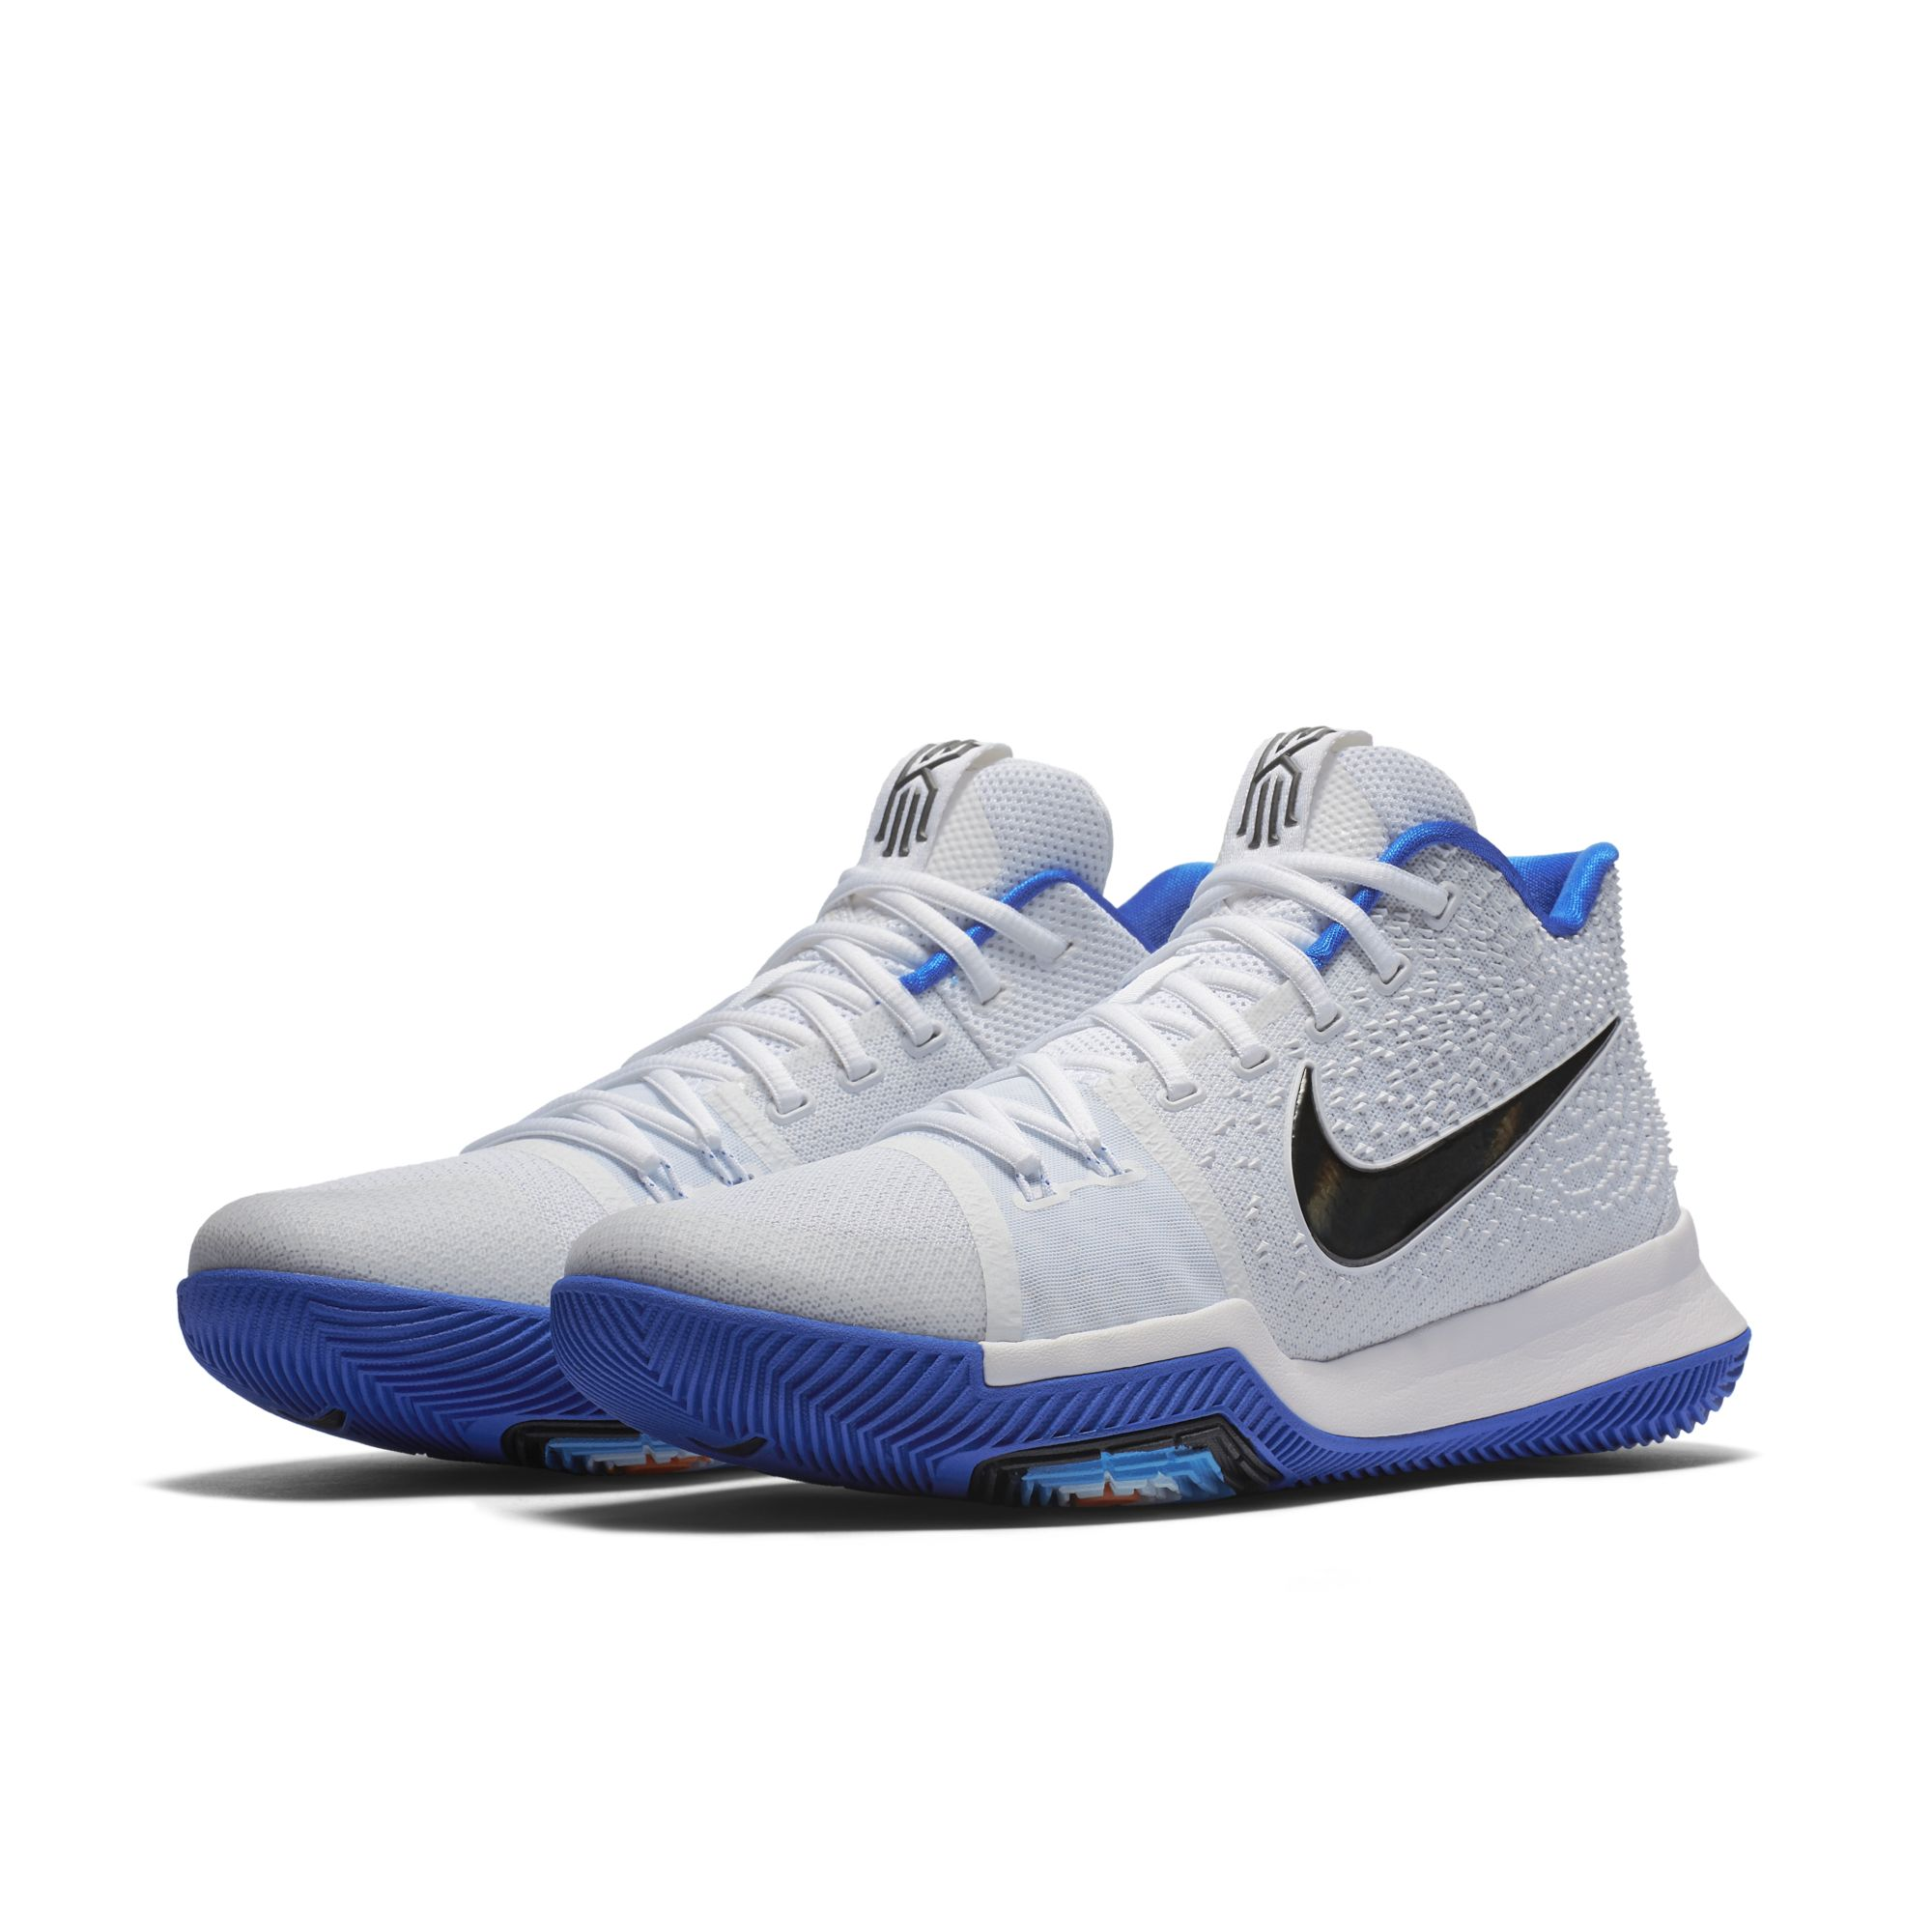 Best On Court Basketball Shoes